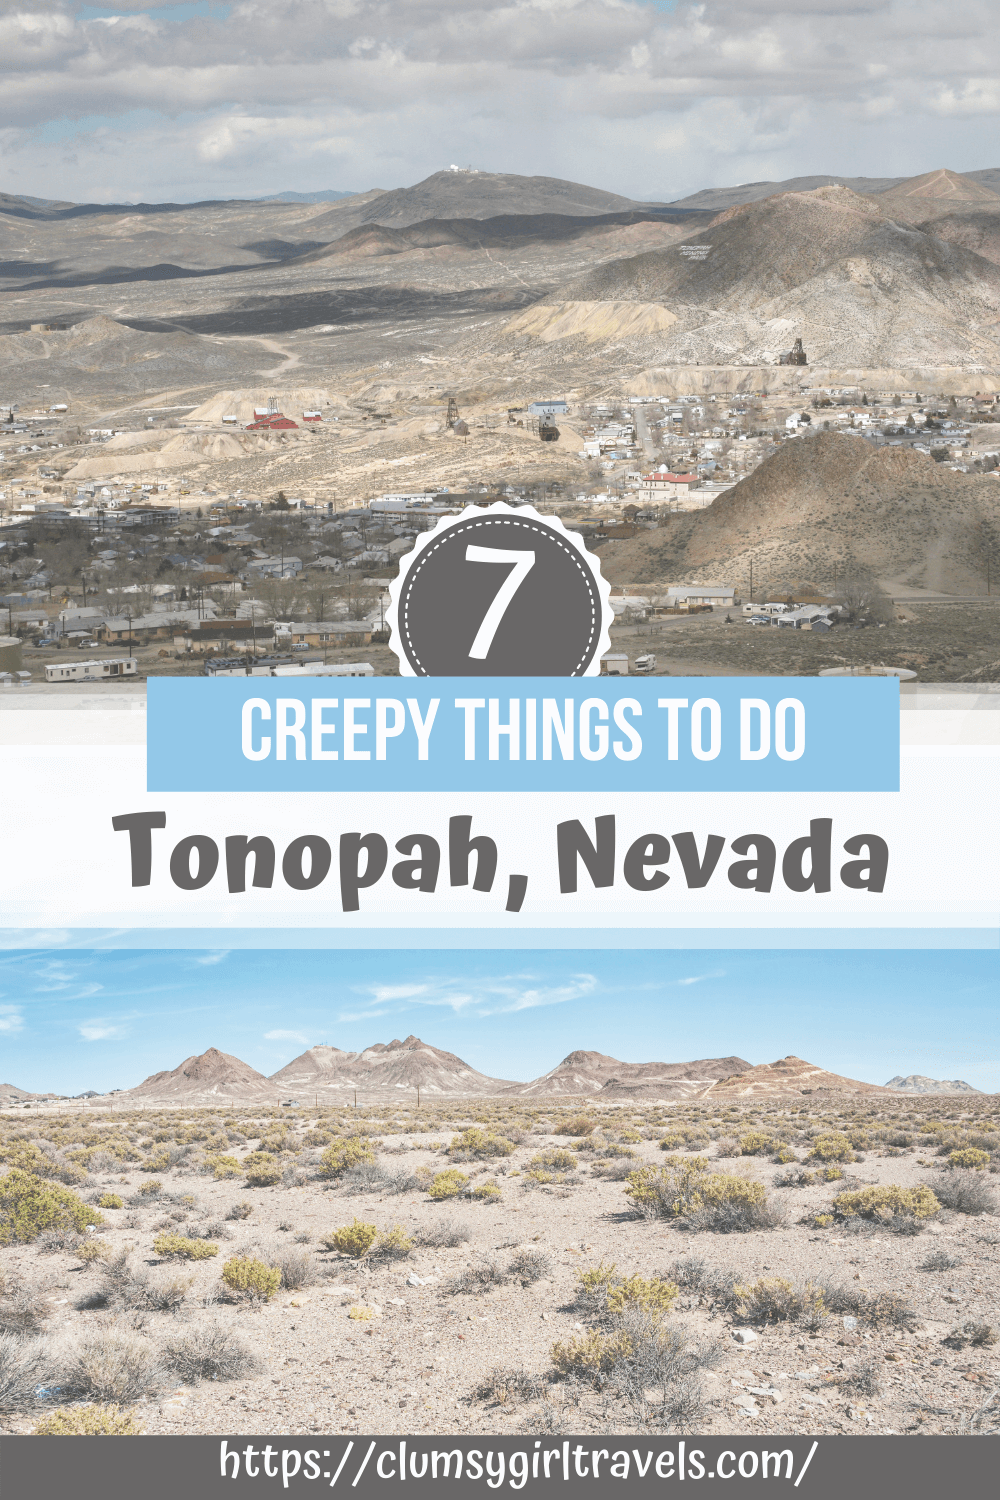 Are you looking for the best things to do in Tonopah? This guide will show you the amazing things to do in Tonopah